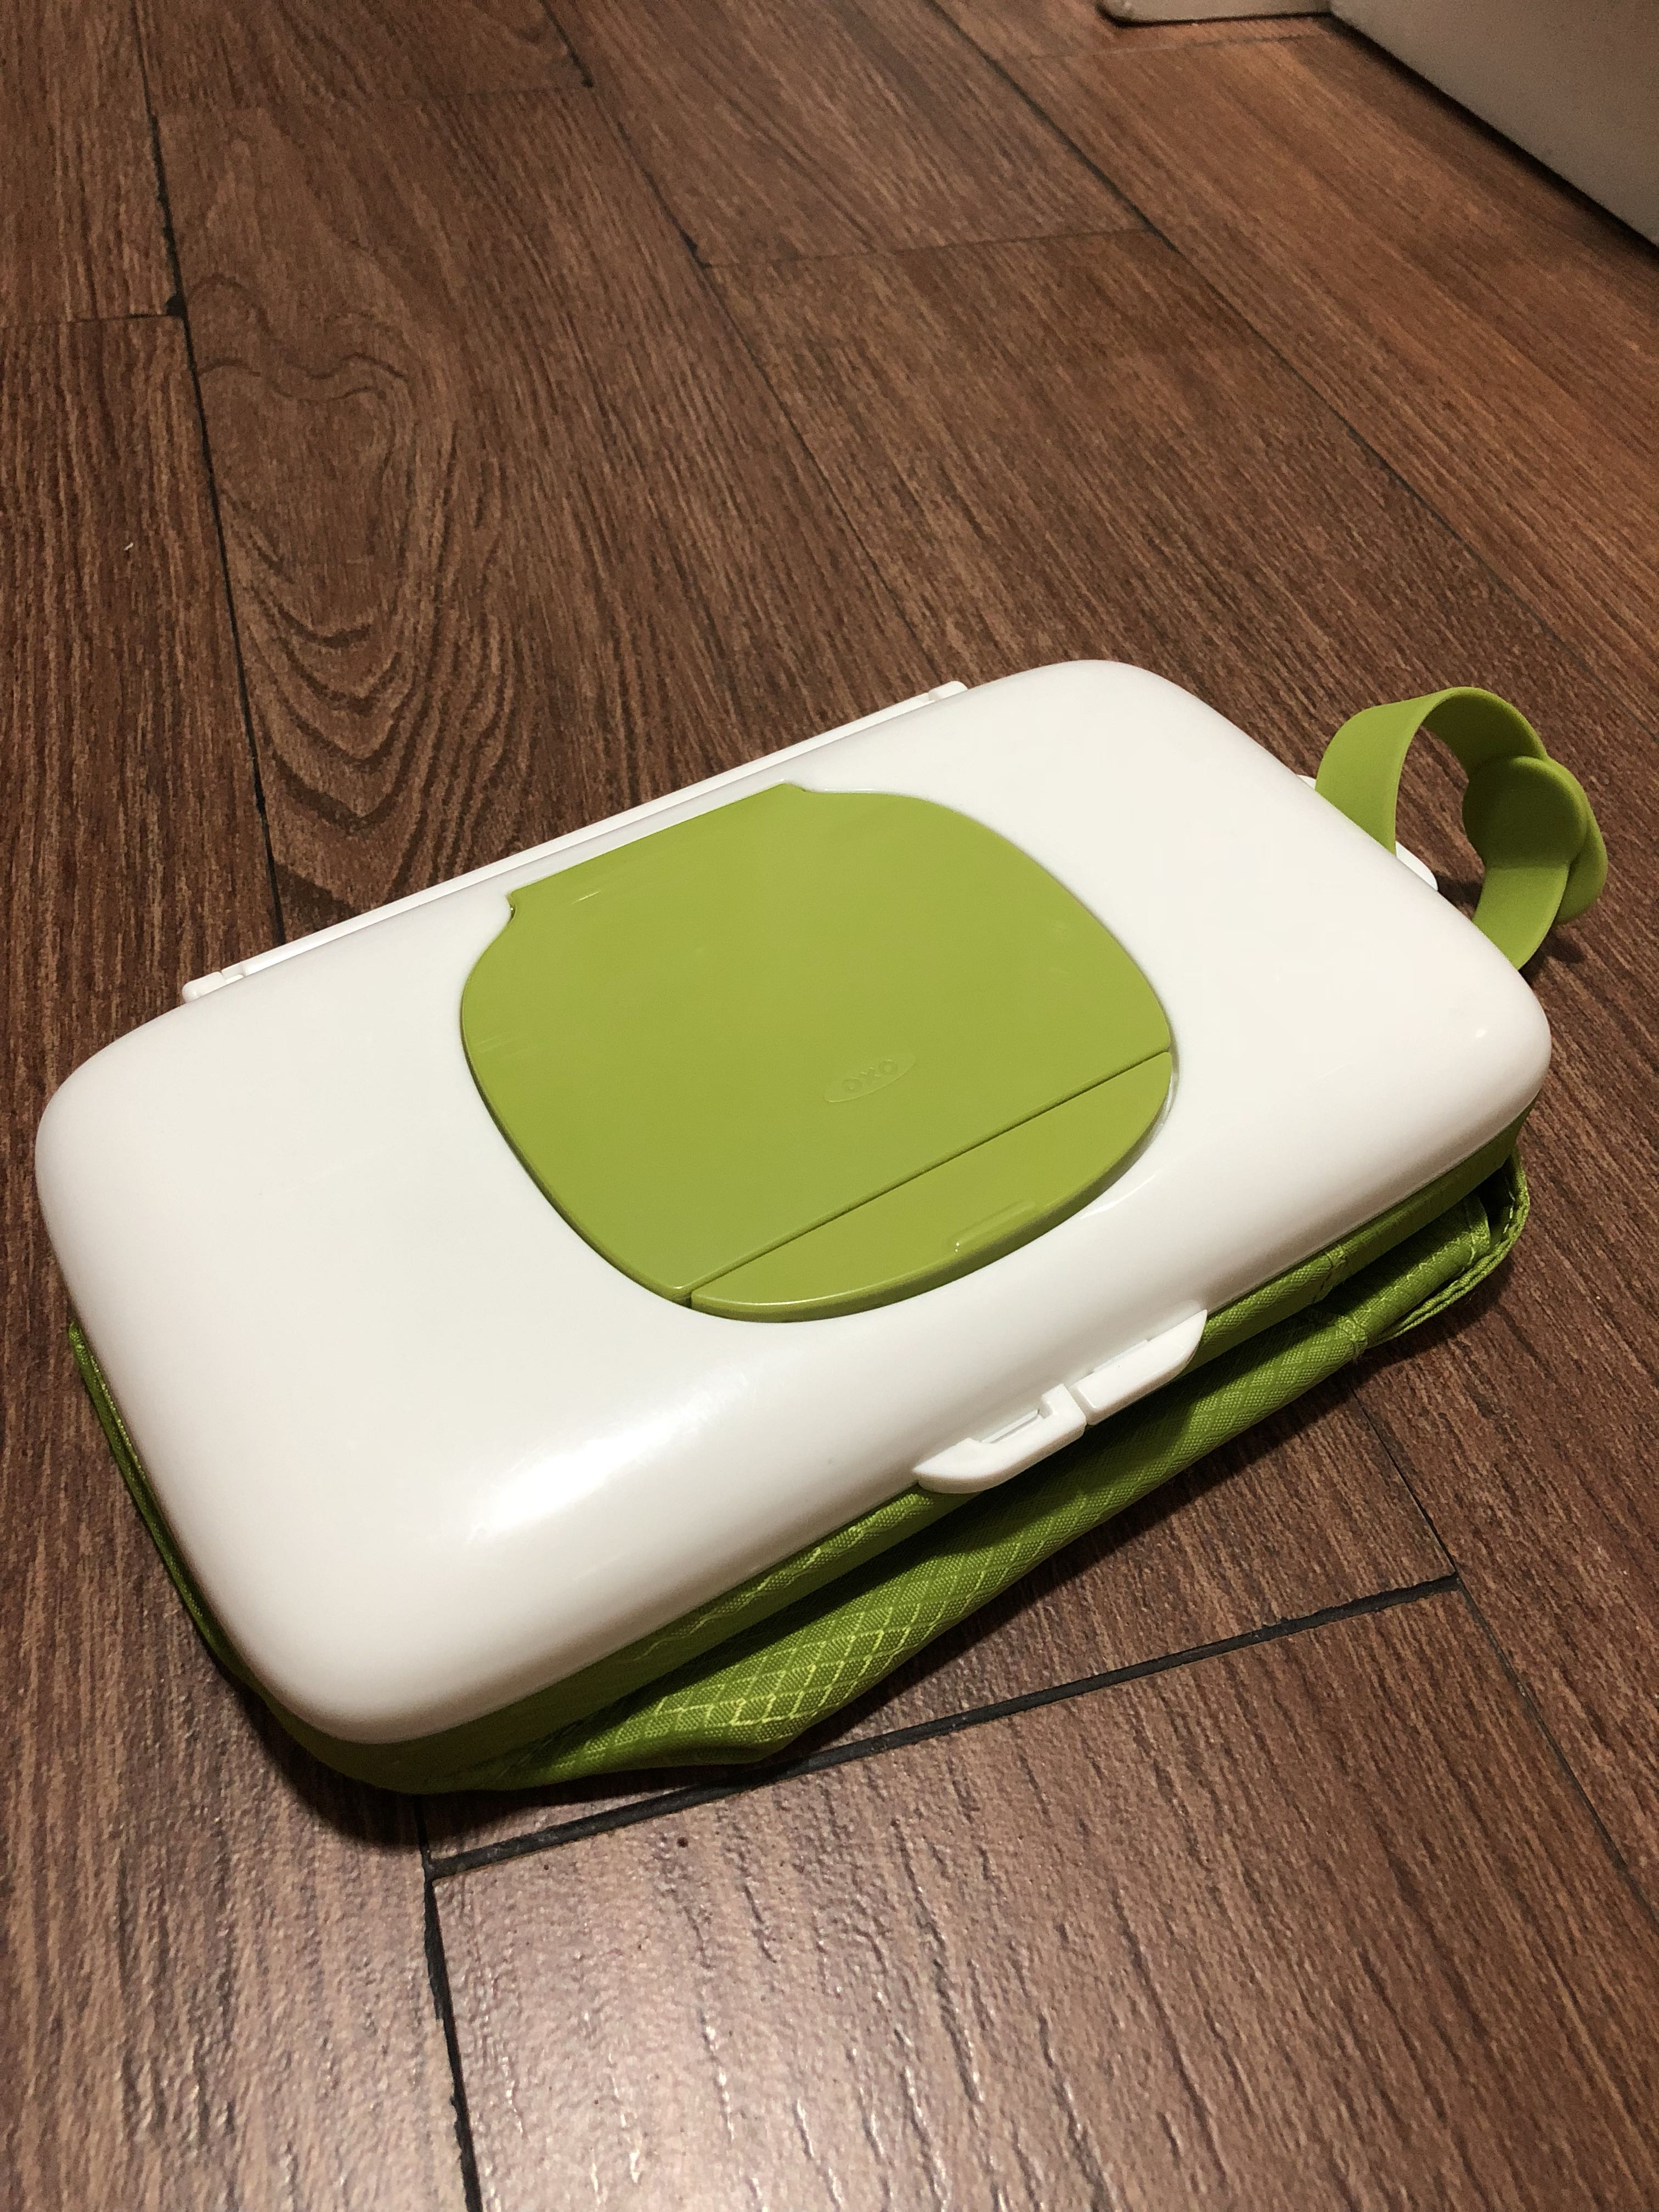 Oxo Tot On The Go Wipes Dispenser & Diaper Pouch - Green, Babies & Kids, Babies Apparel on Carousell